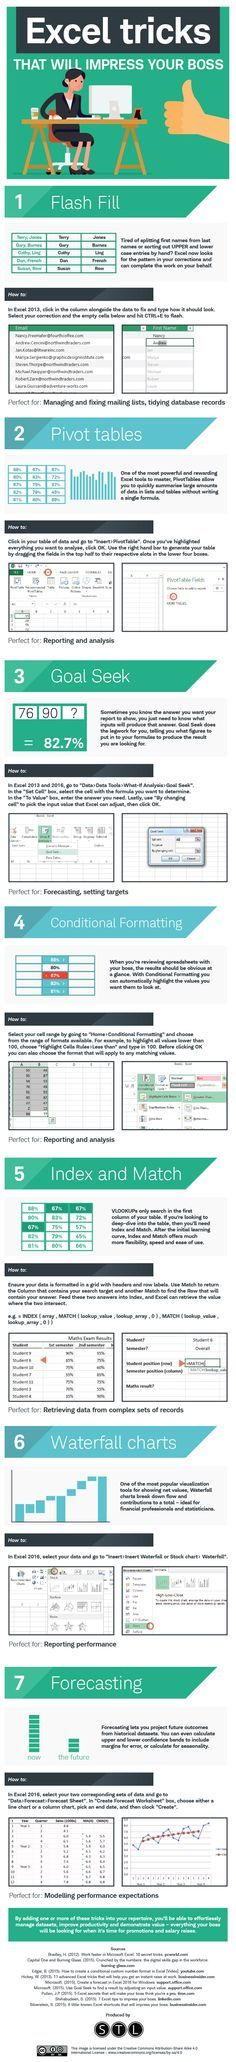 Excel is a powerful tool. At first glance, it looks like a bunch of boxes that you type numbers into, but it does so much more. Of course, you need to know how to use it. We have tons of articles here at MakeUseOf that will teach how to be better at Excel, and here's another quick…